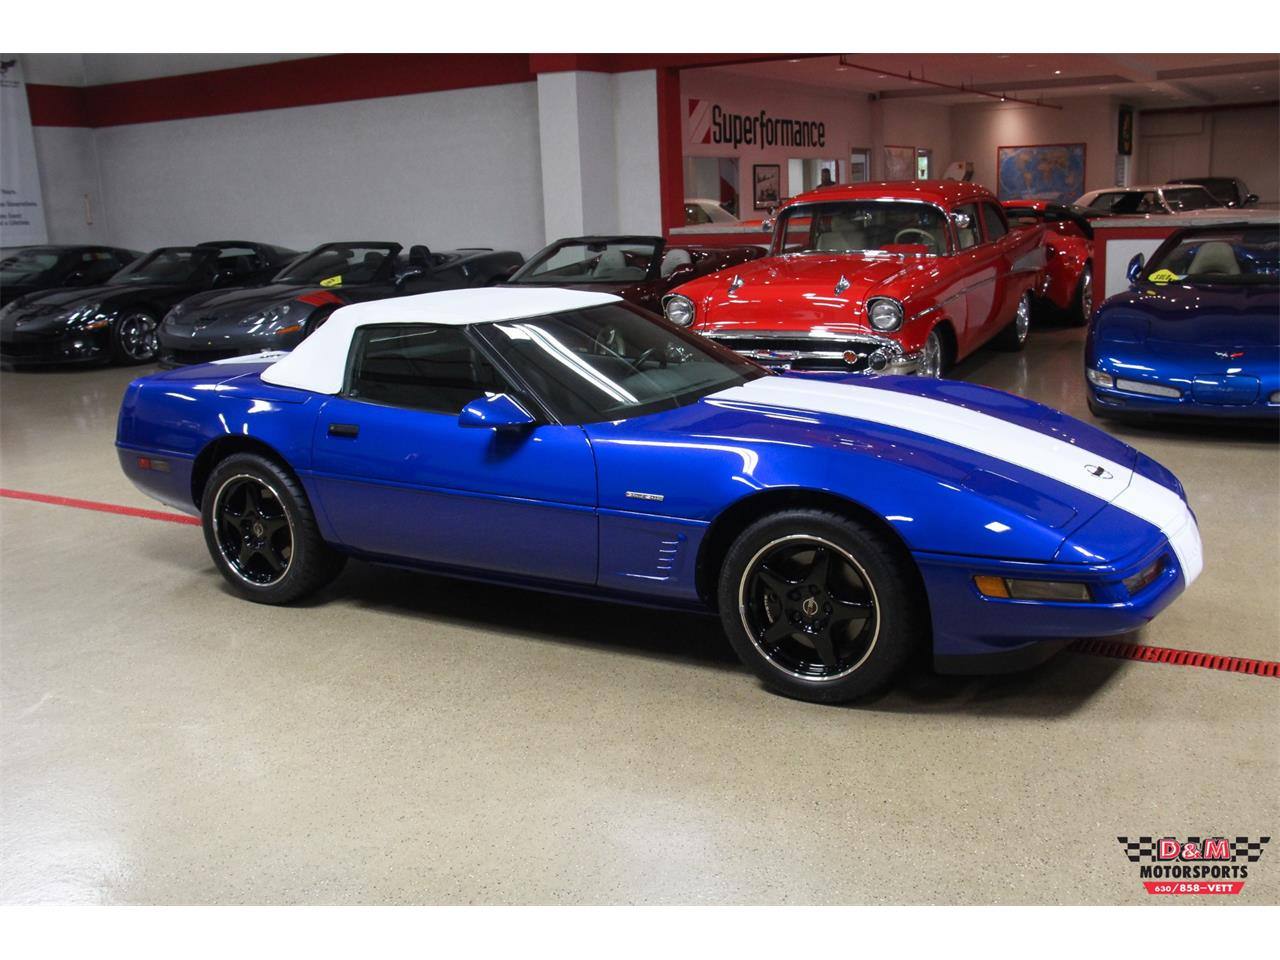 Large Picture of '96 Corvette - $44,995.00 Offered by D & M Motorsports - LV9Z